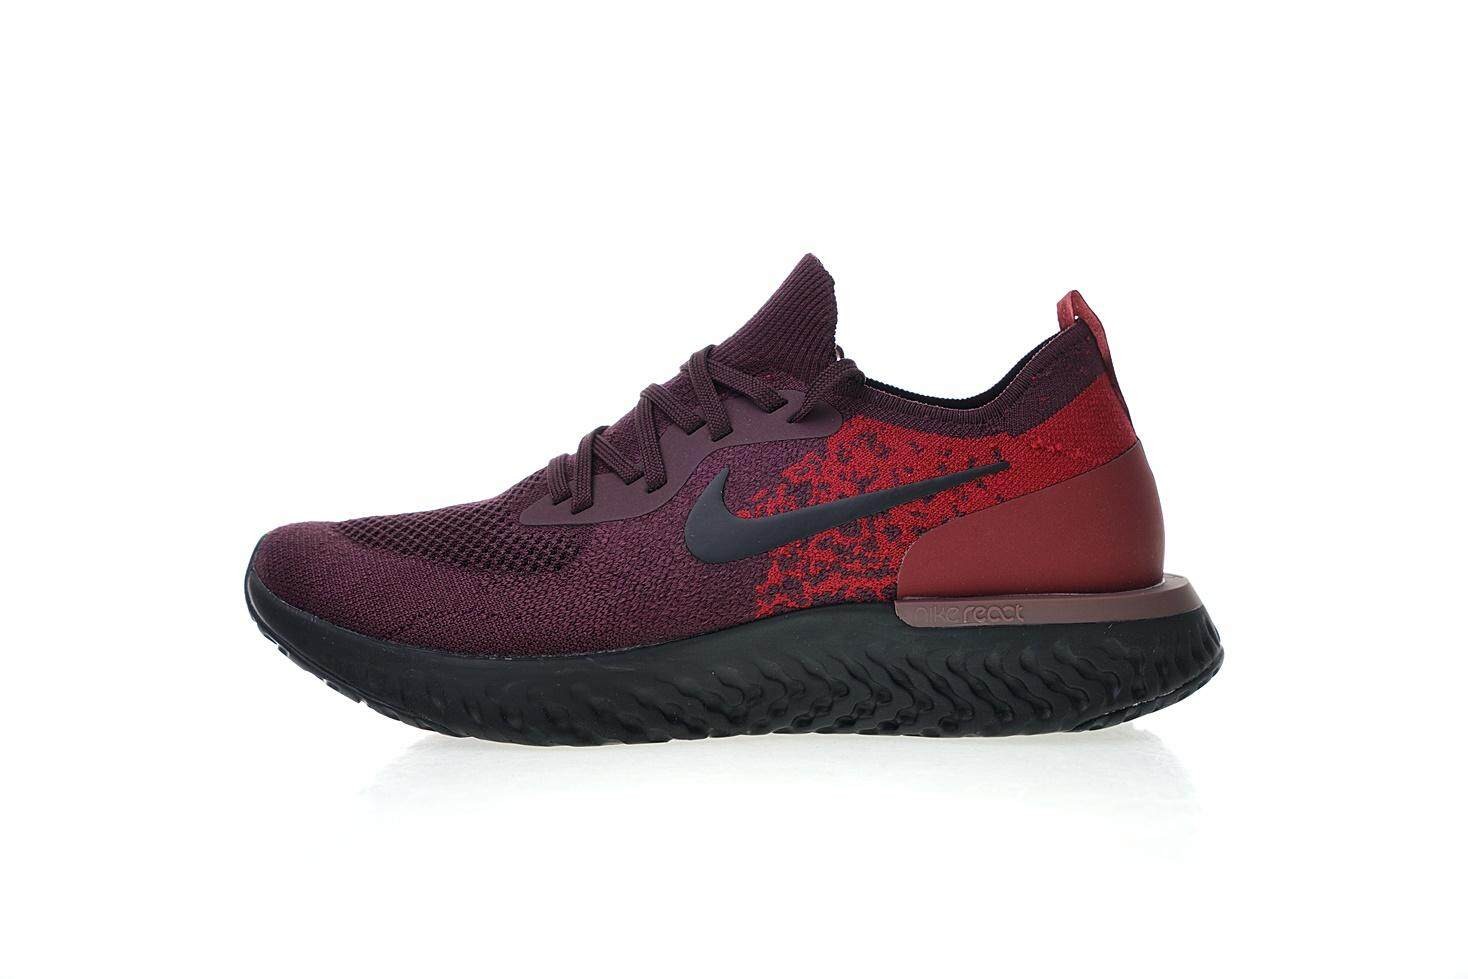 Nike Epic React Flyknit Men s Comfortable Running Sneaker Fashion Casual  Sport Shoes (Wine ... cd9a6499a4